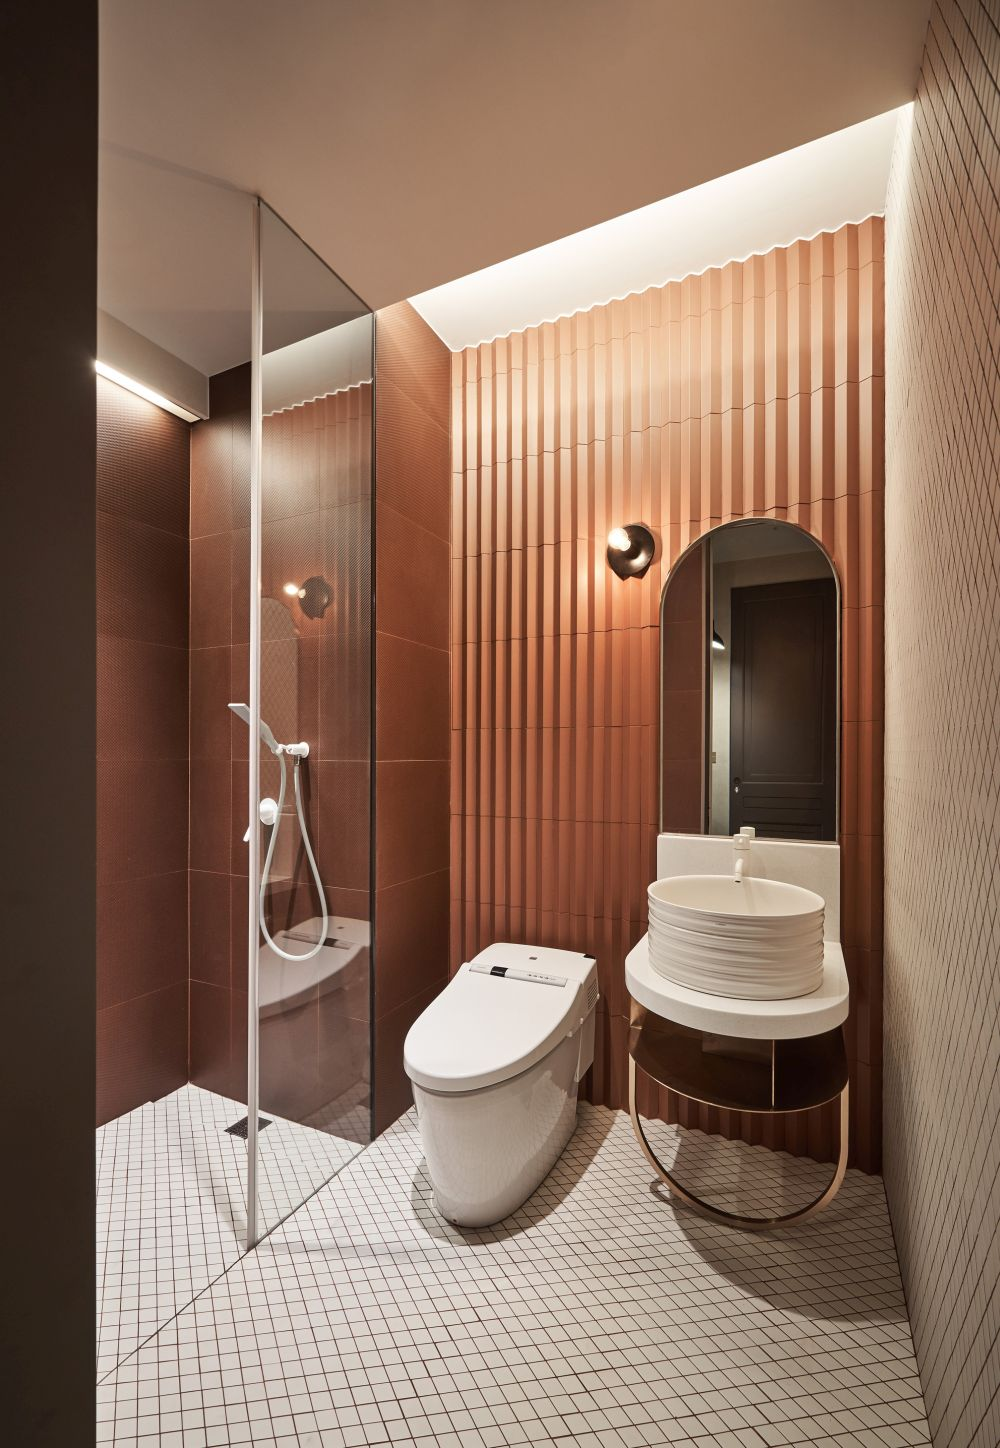 The bathroom has these chic copper accents that we also saw in the kitchen